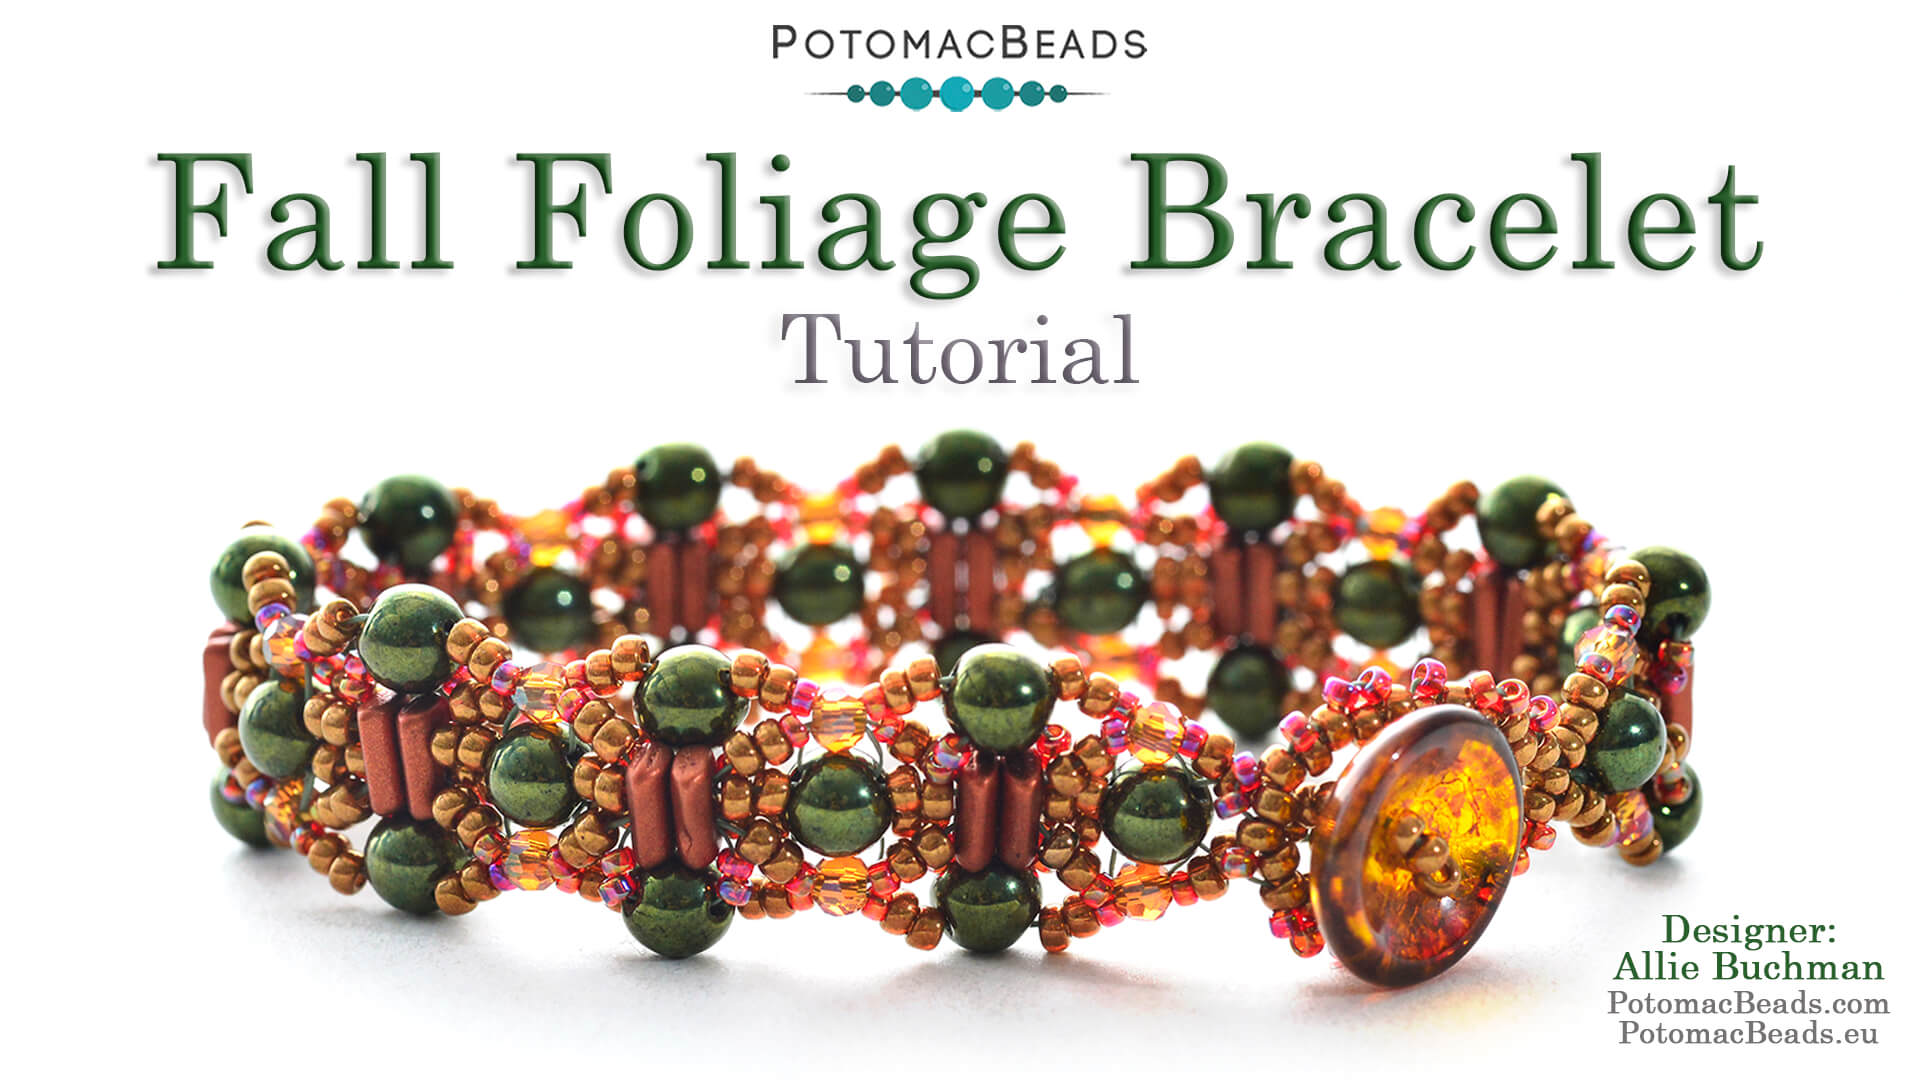 How to Bead Jewelry / Videos Sorted by Beads / Par Puca® Bead Videos / Fall Foliage Bracelet Tutorial